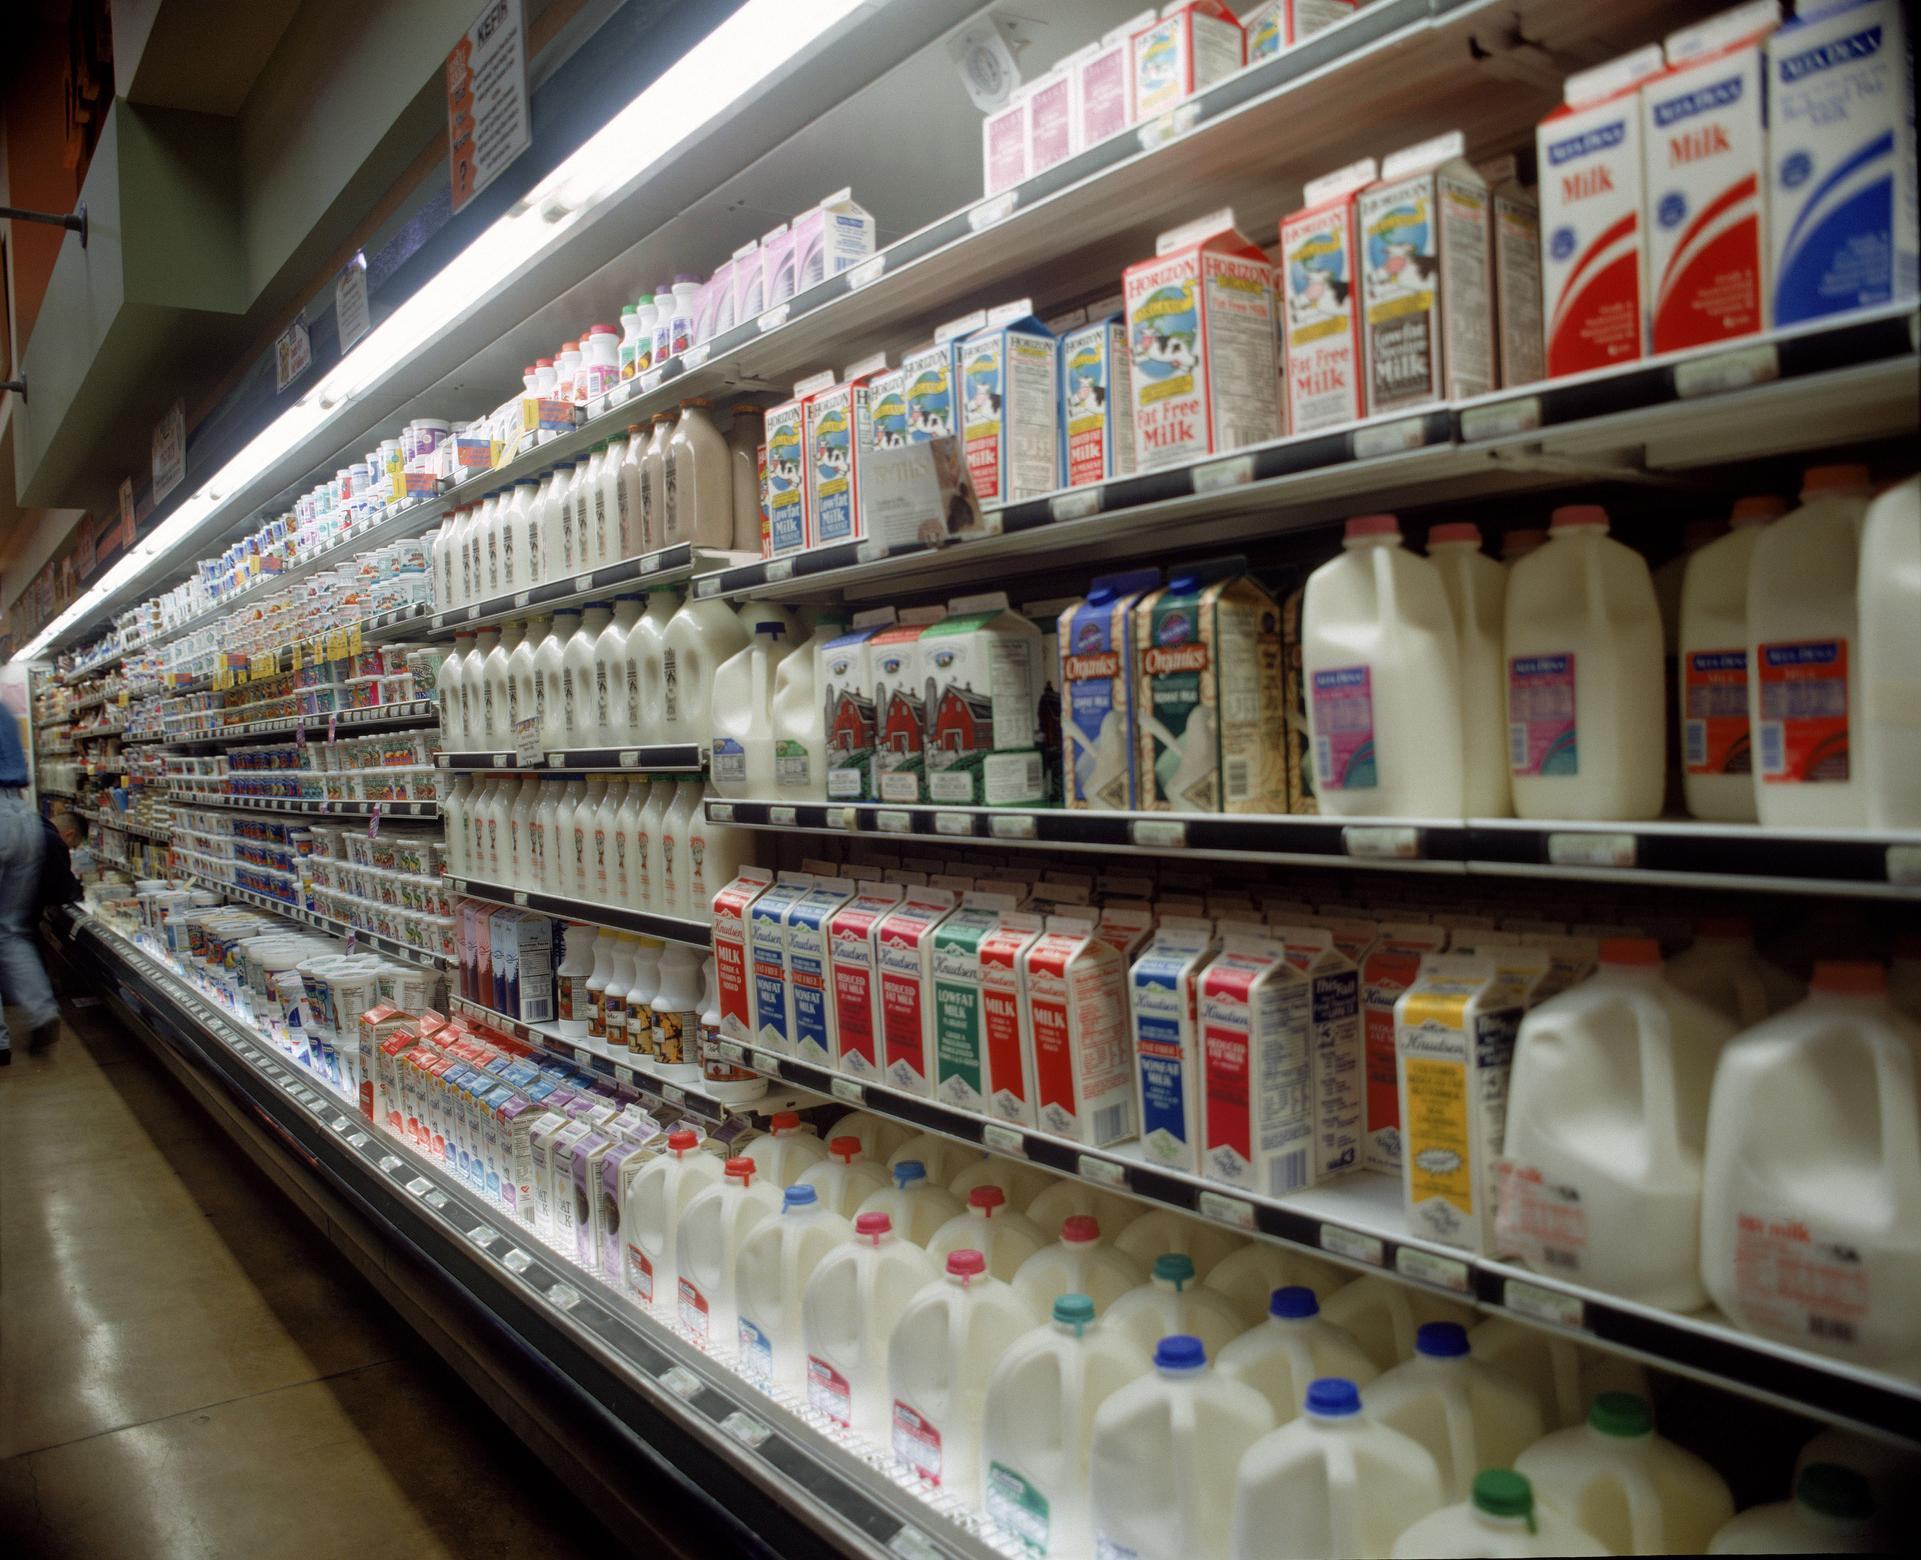 Shelves of milk and consumer staples at a grocery store